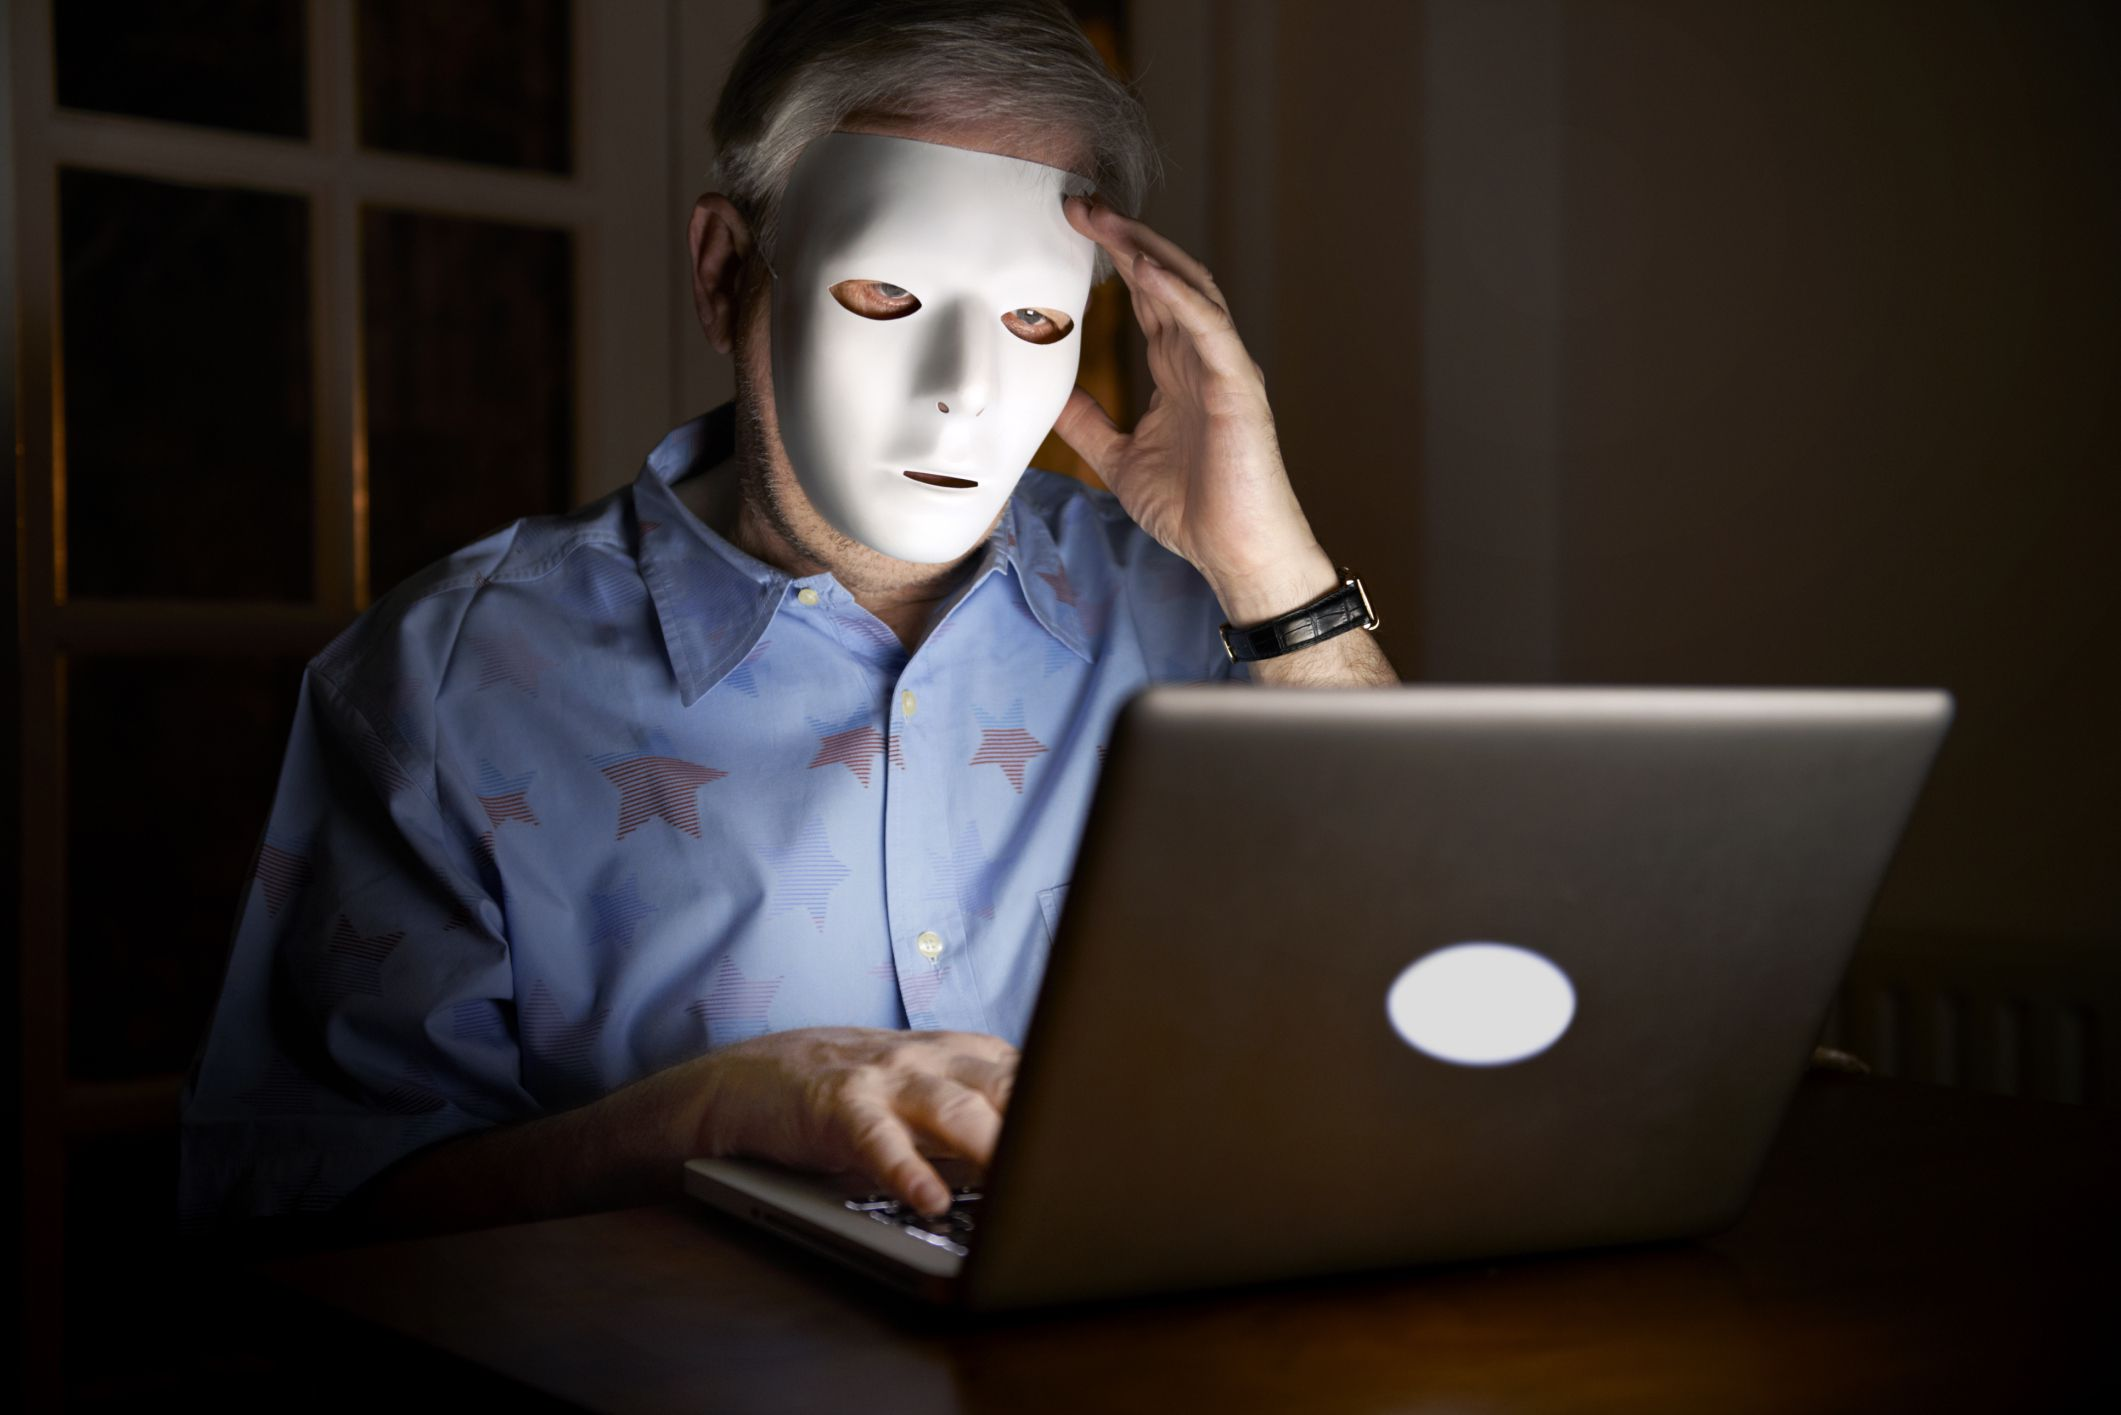 An unknown stalker reading Facebook profiles